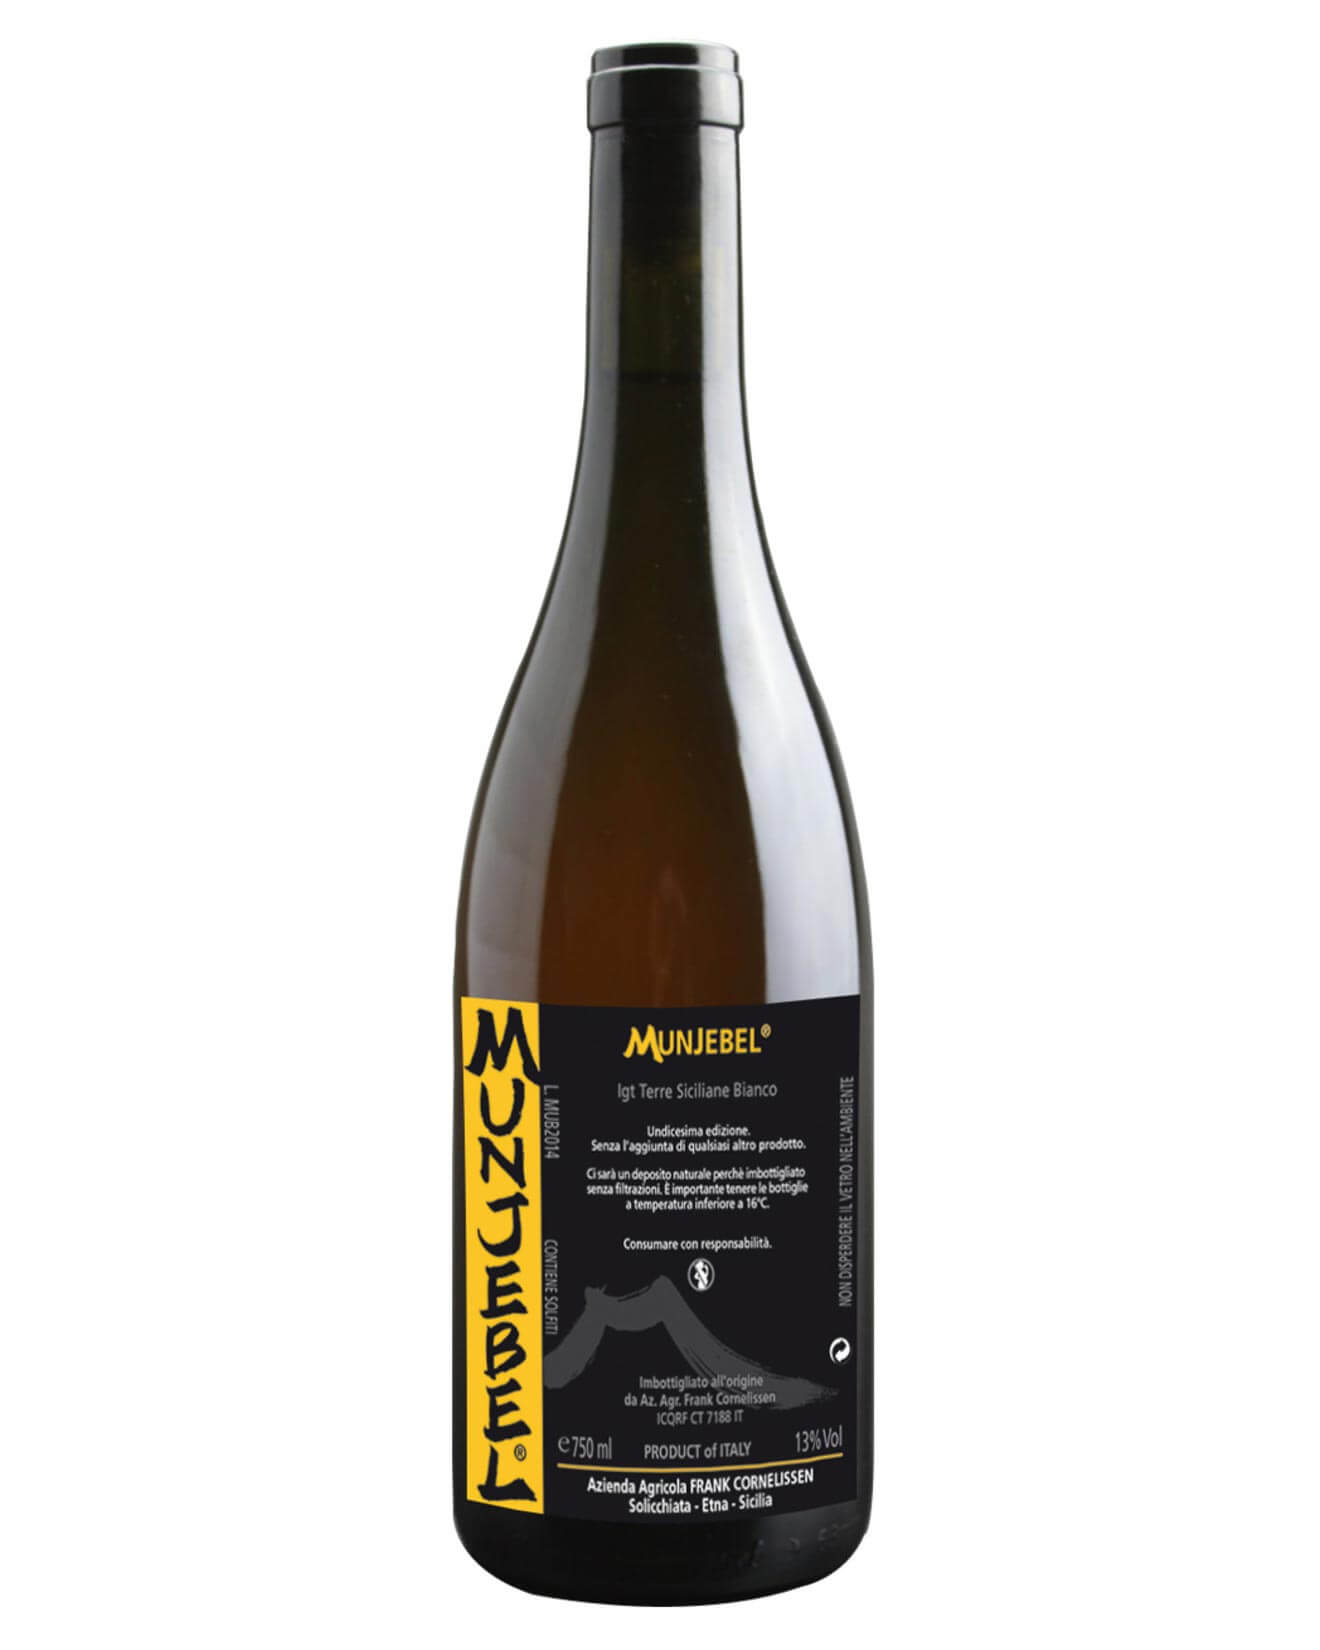 Frank Cornelissen Munjebel 2016, bottle on white